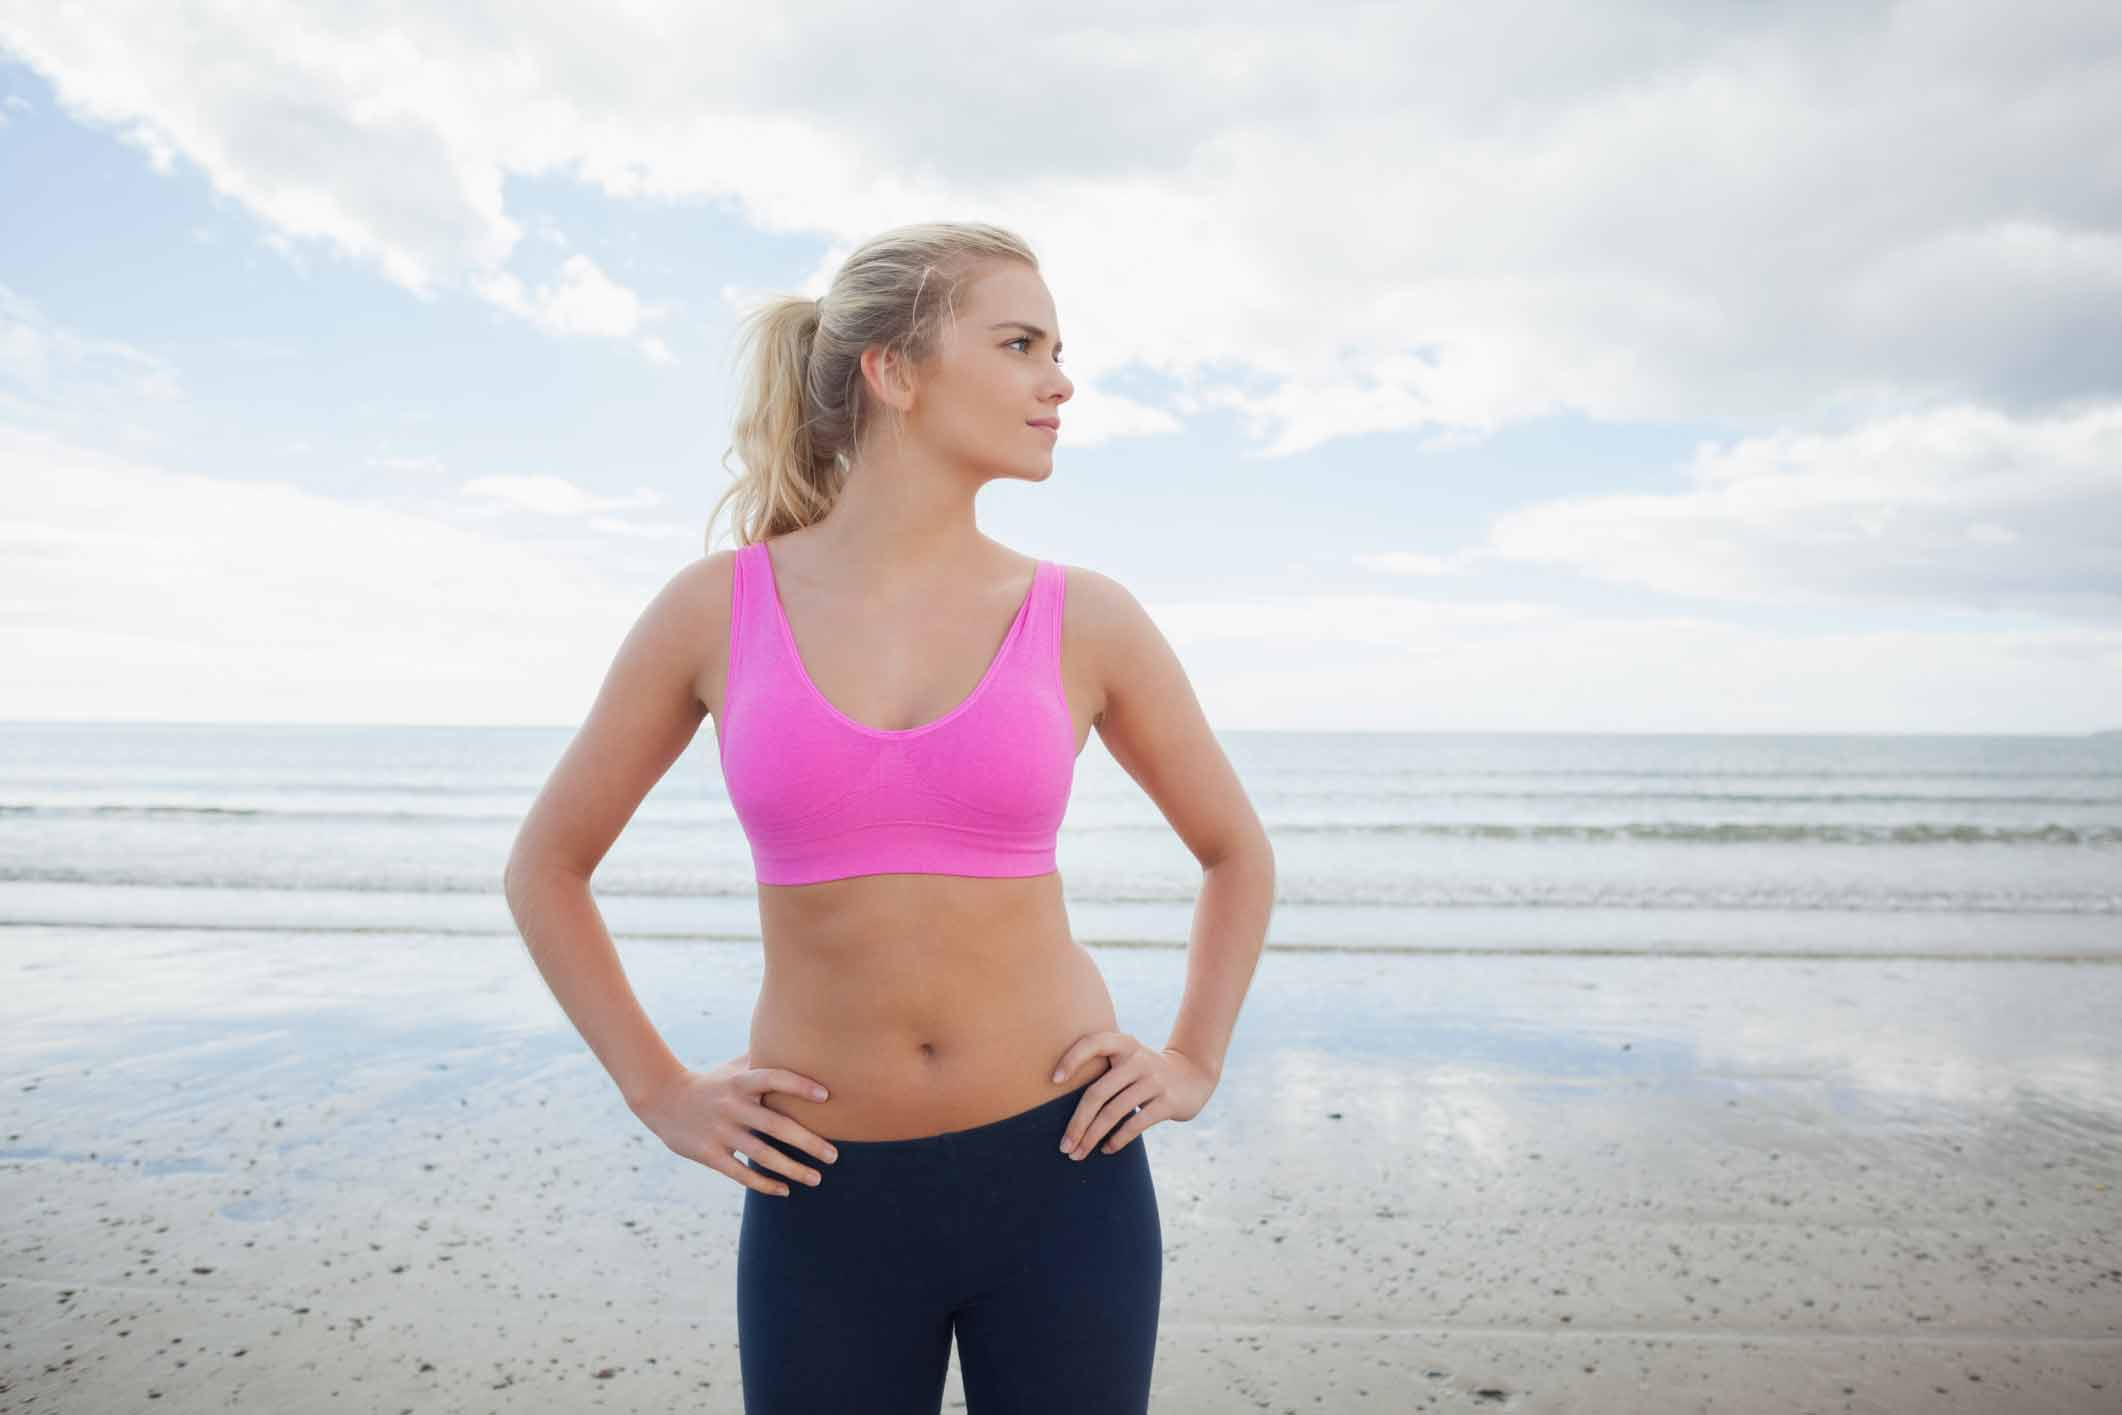 Get Your Summer Body Ready with the Fitness Studio